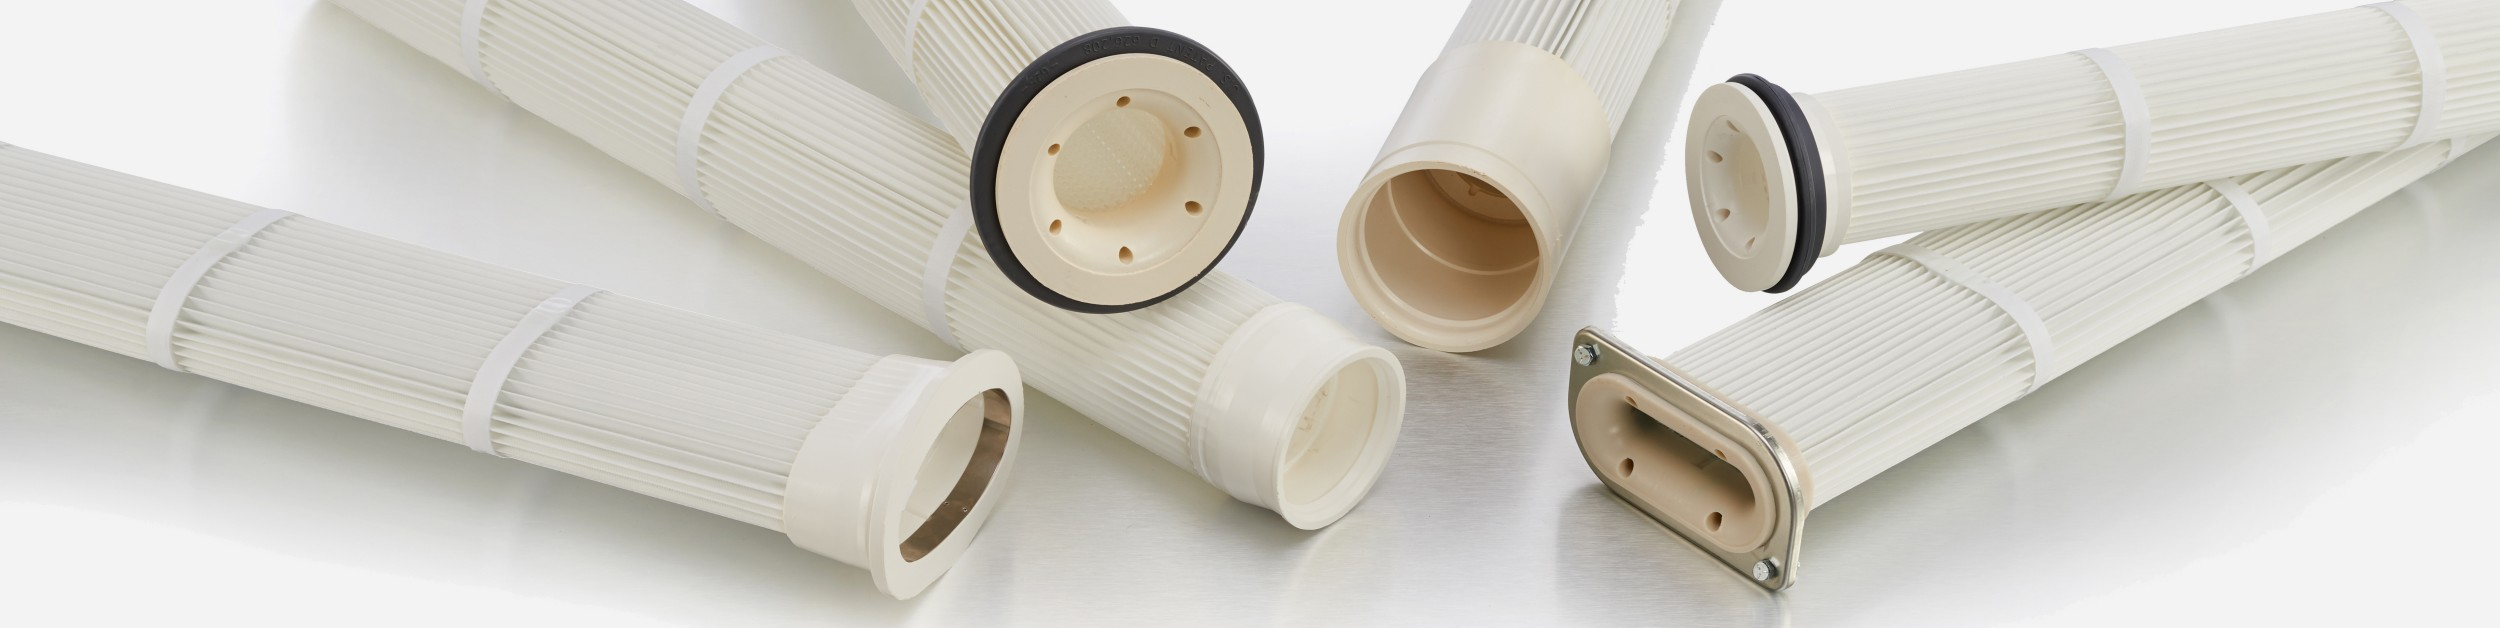 Donaldson PTFE Torit-Tex Specialty Pleated Bag Filter | AIRPLUS Industrial